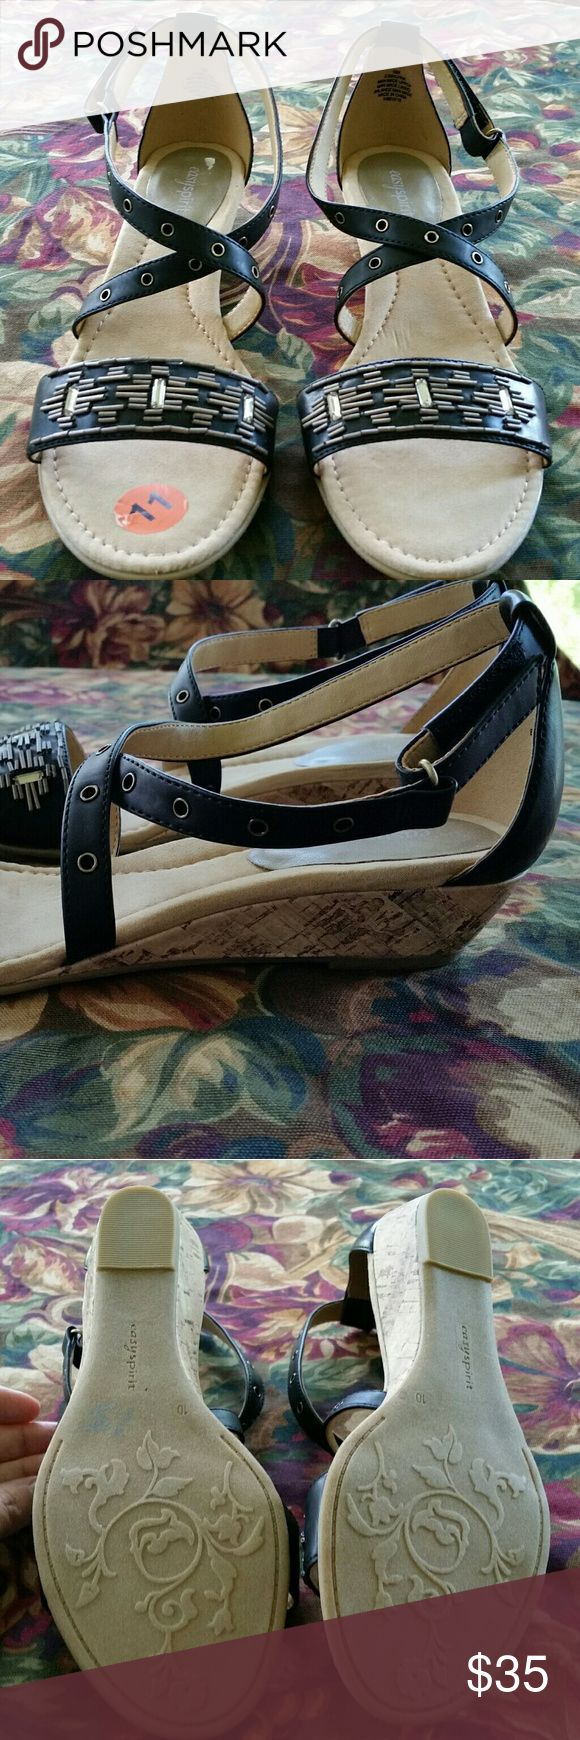 Easy Spirit Wedge Sandals Size 10 - NWOT Brand new Easy Spirit black leather cork wedge sandals. Very nice crystal beading across toe strap. Low cork wedge heel with easy velcro strap closure. Size 10 womens.    Super cute and perfect for summer! Easy Spirit Shoes Sandals